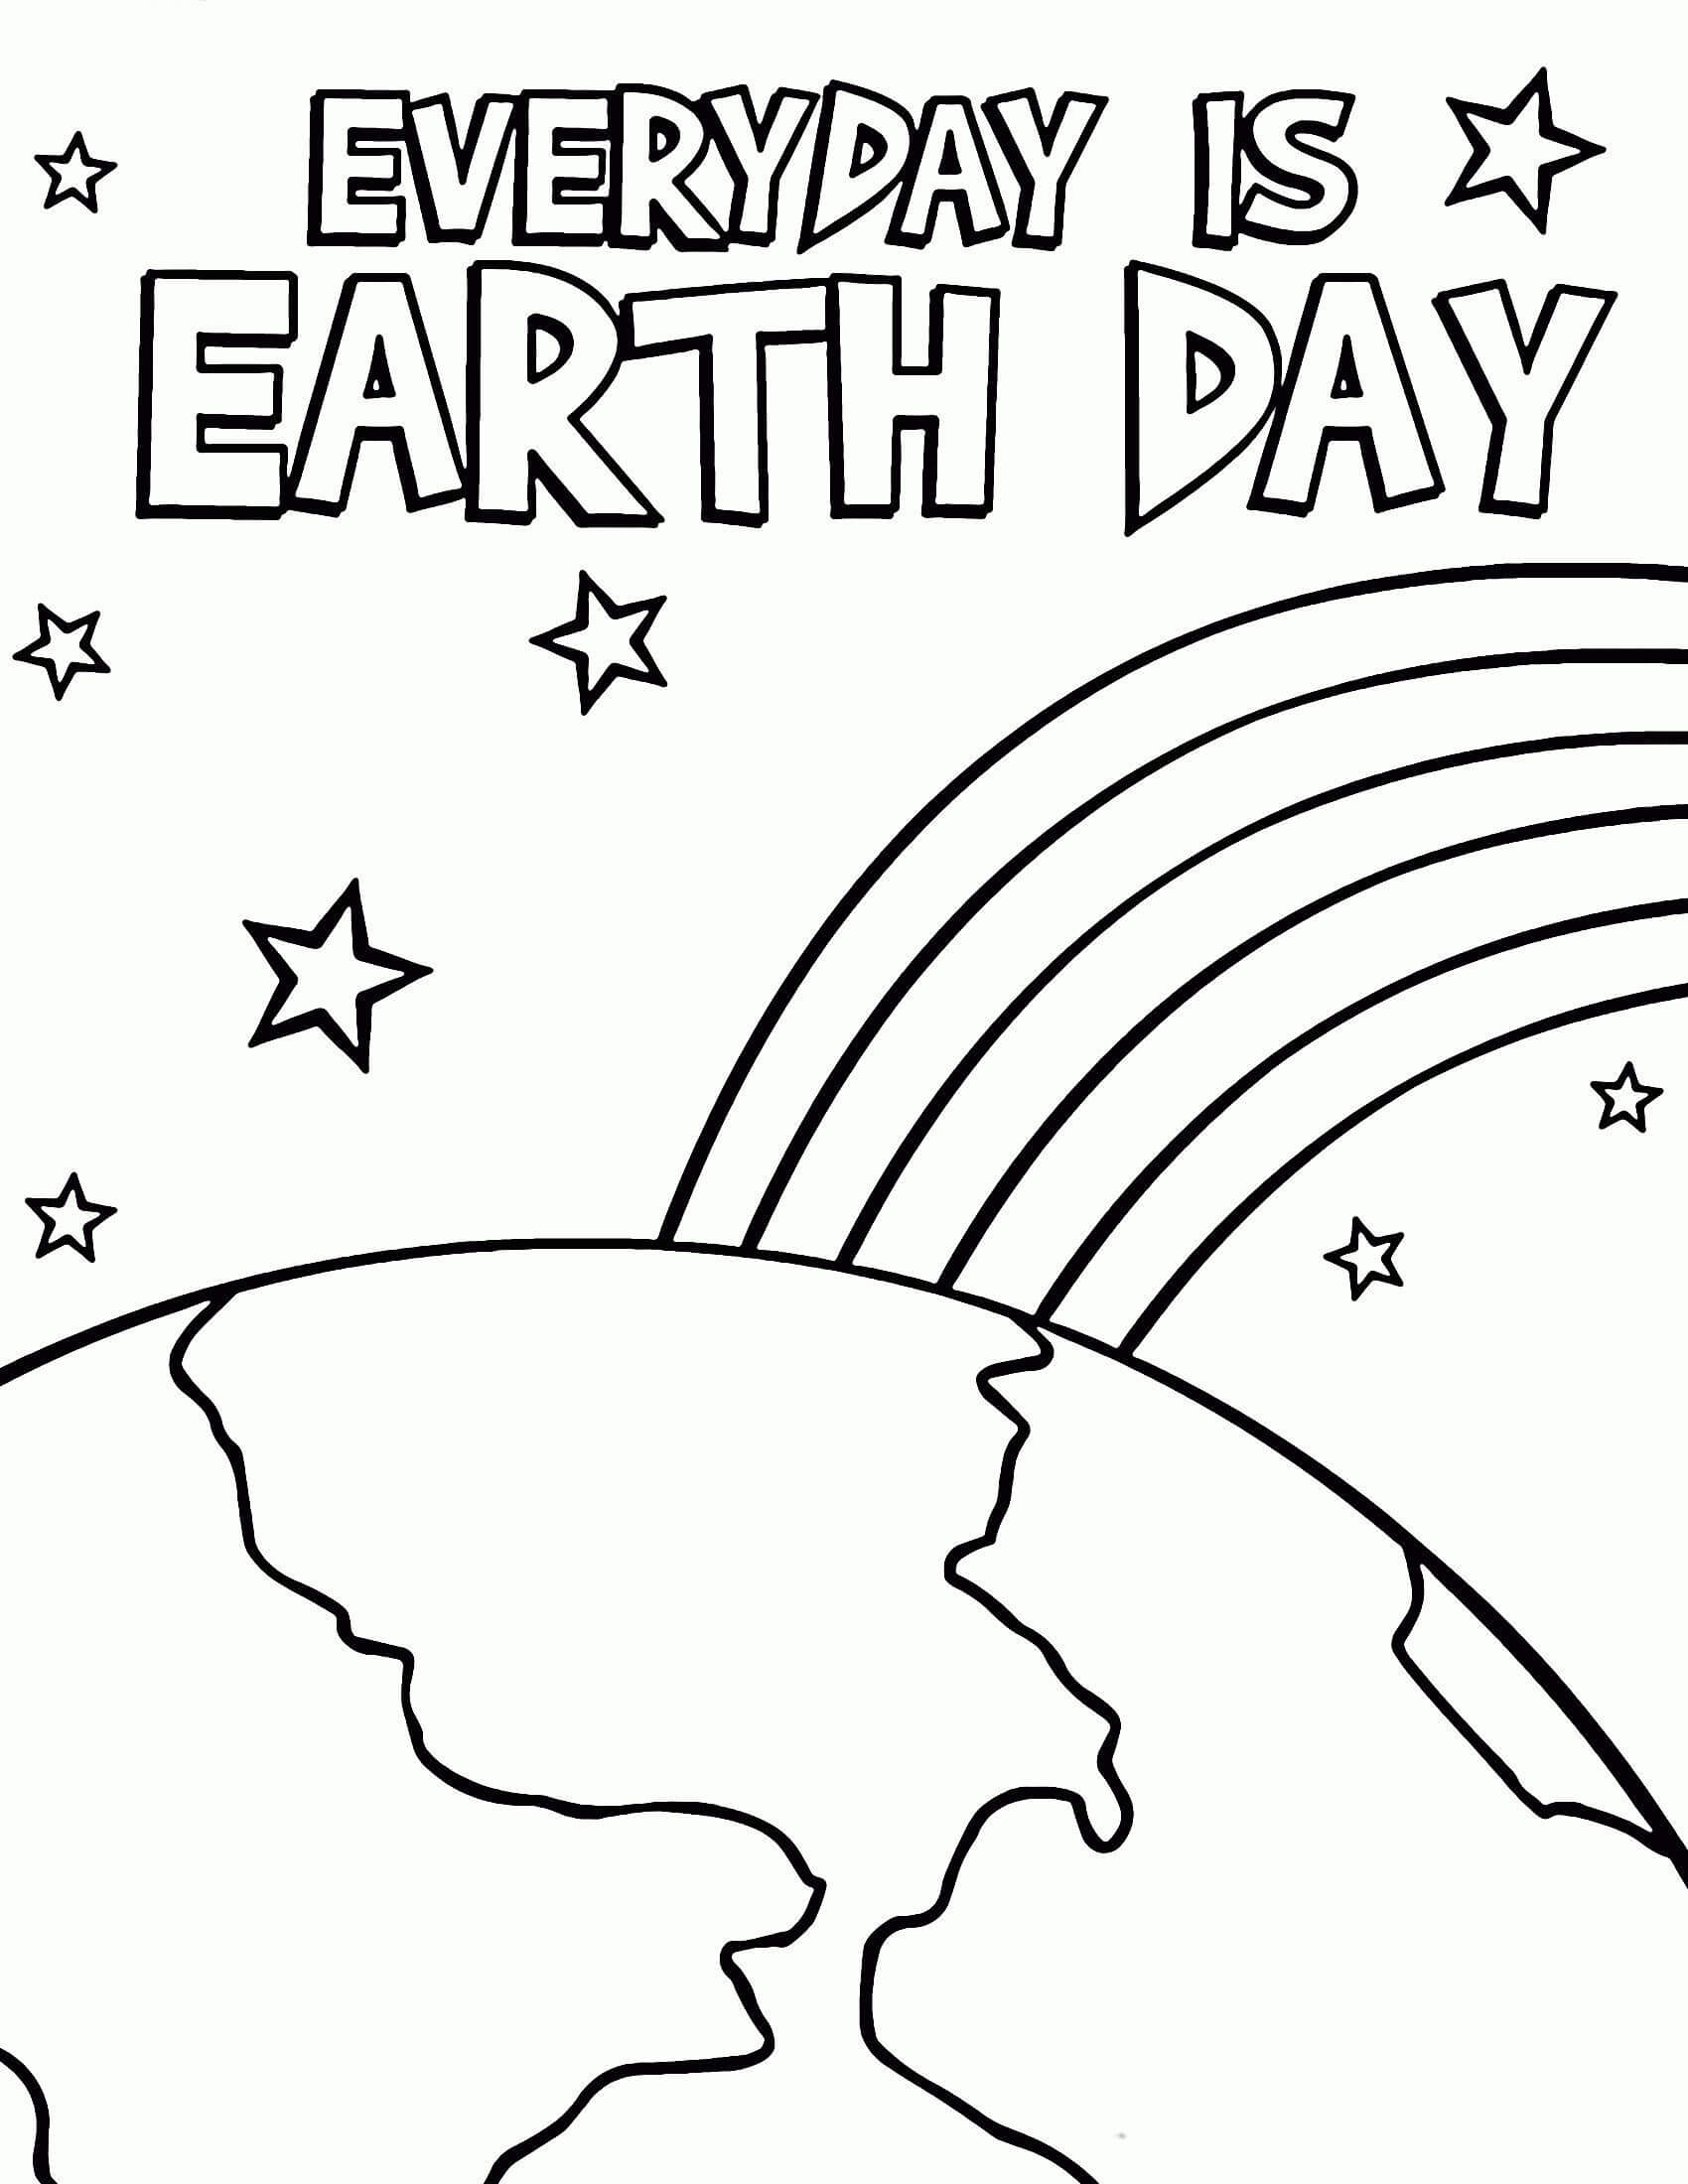 100 free printable earth day coloring pages and activities best